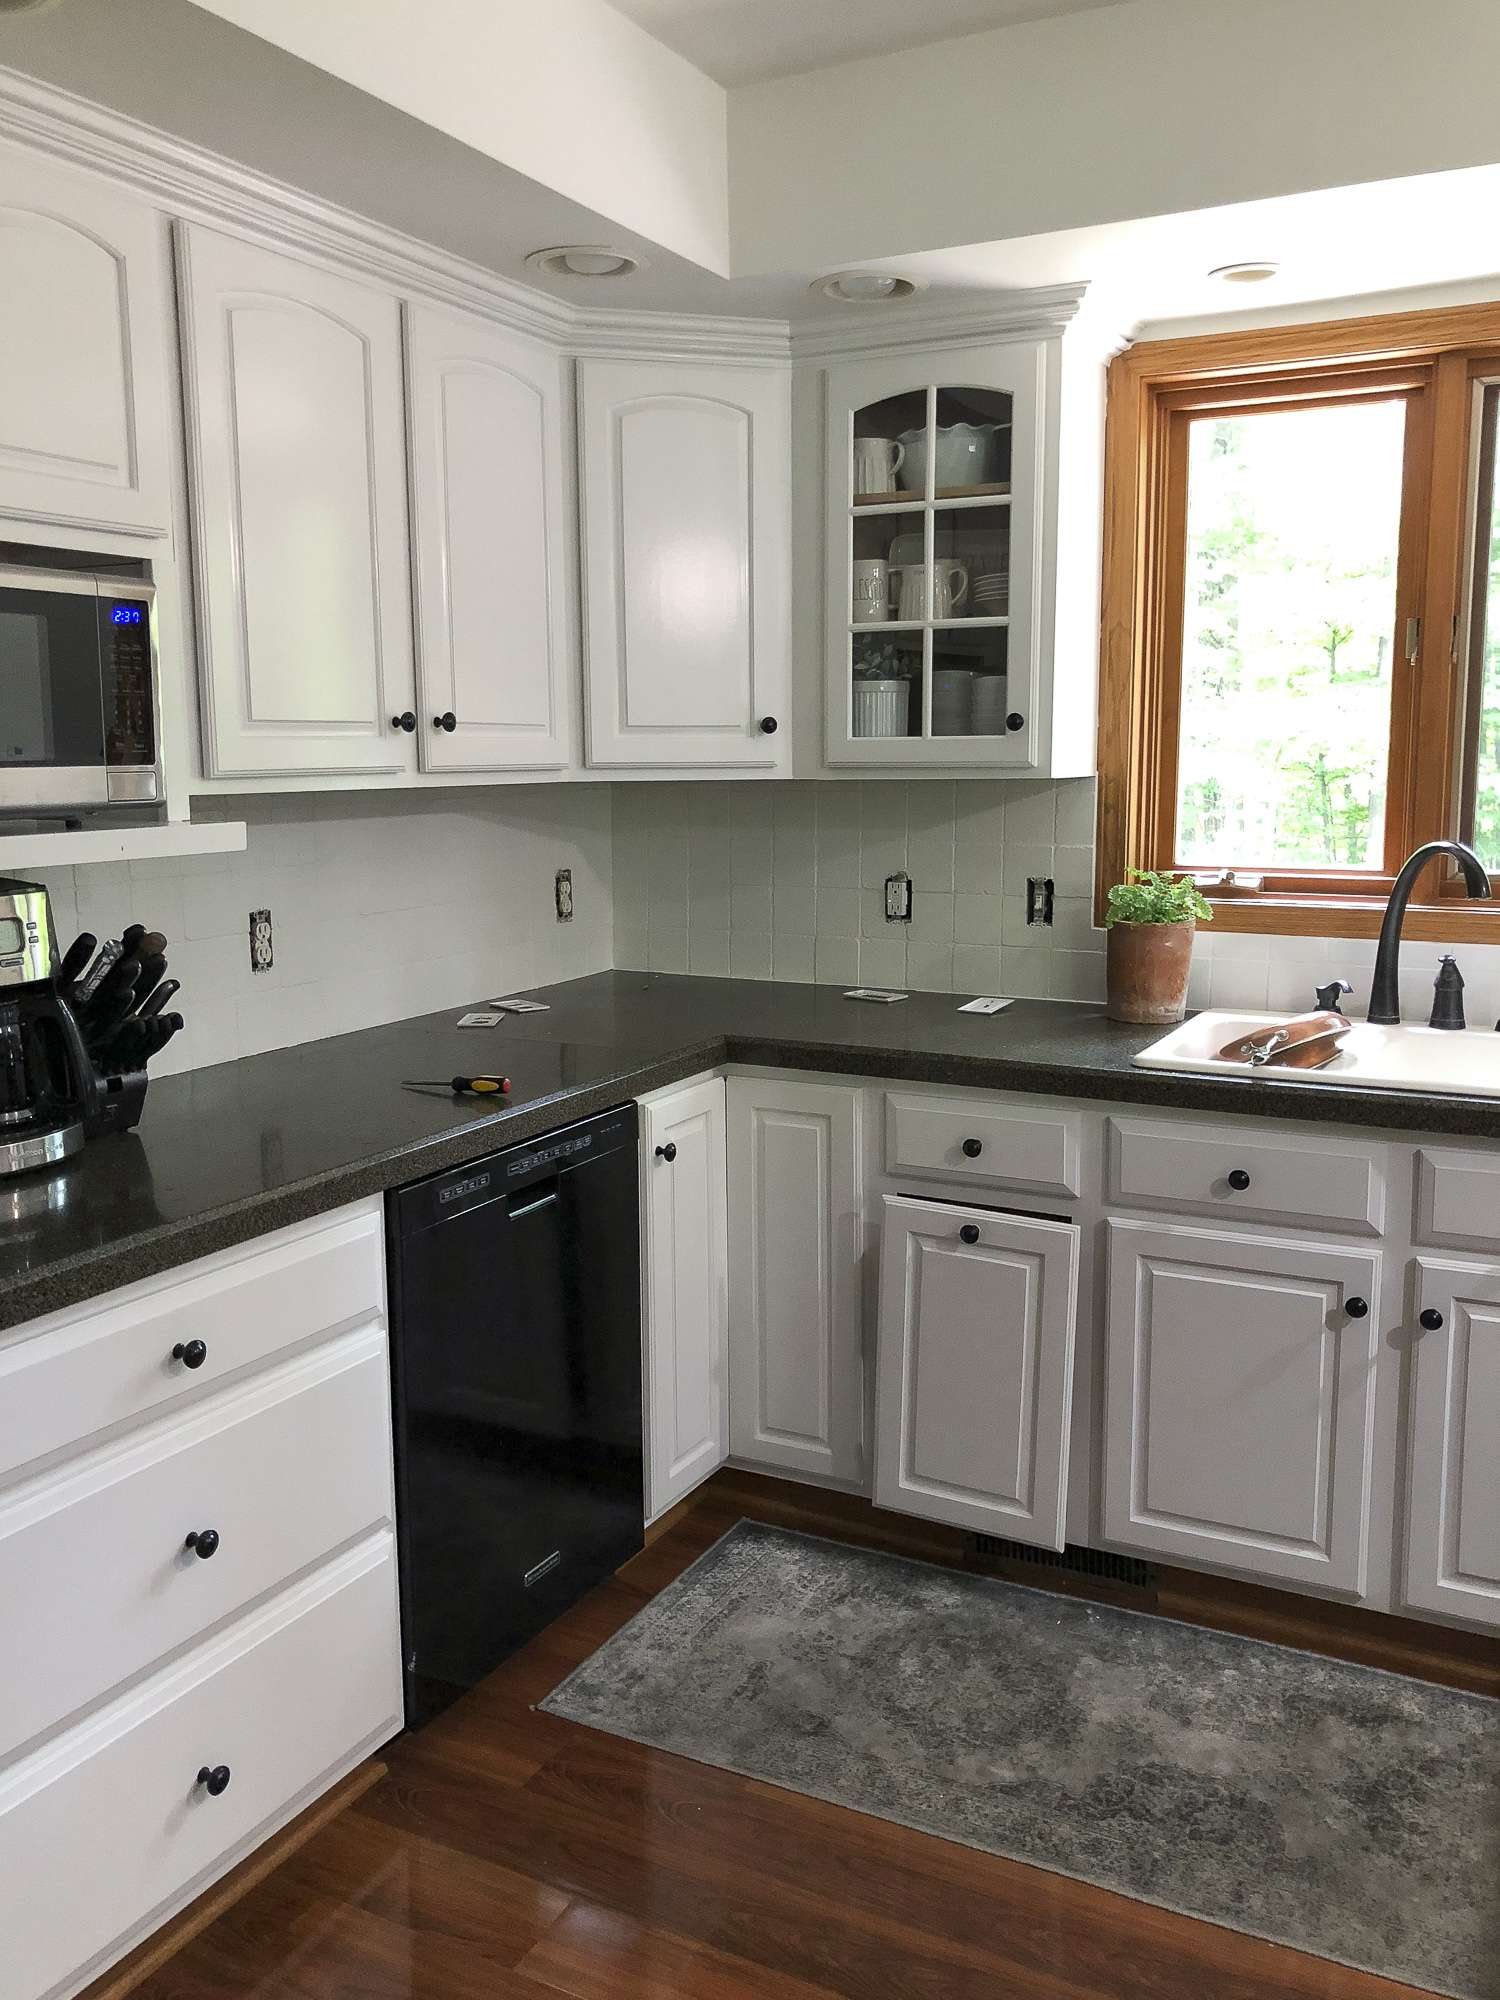 How To Paint A Tile Backsplash Kitchen Renovation Grace In My Space